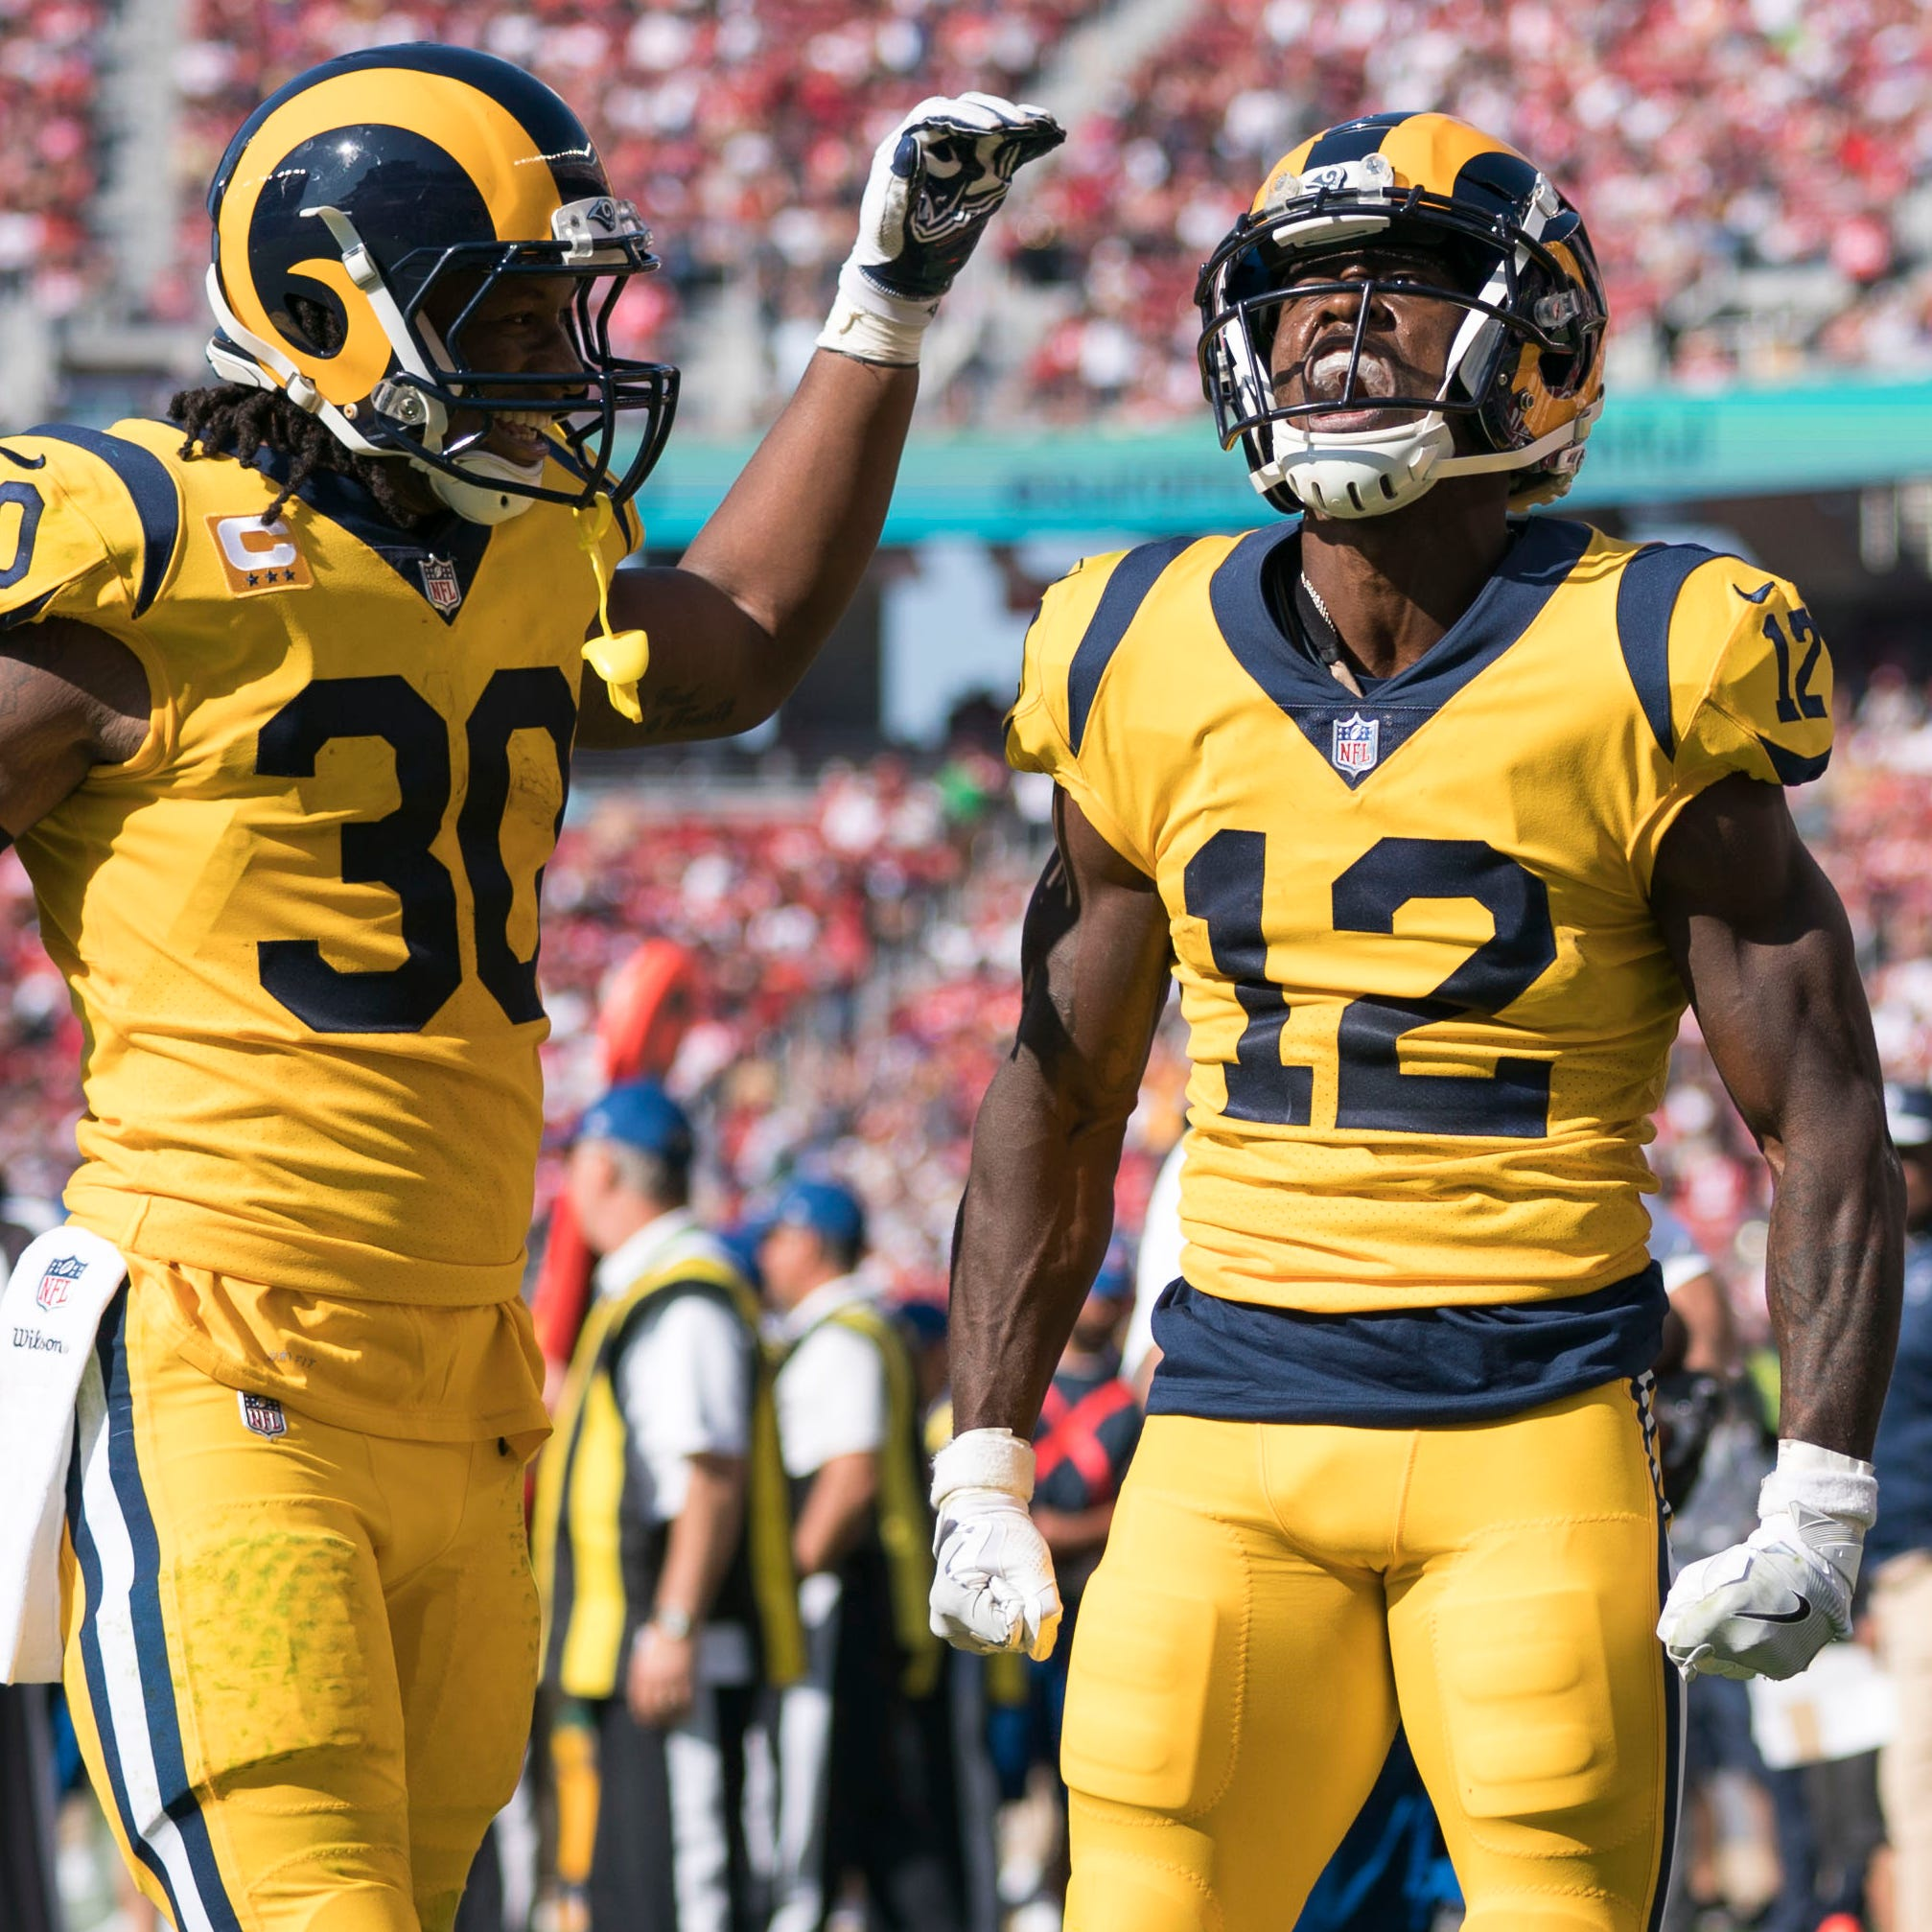 Green Bay Packers' next opponent: Quick takes on Los Angeles Rams